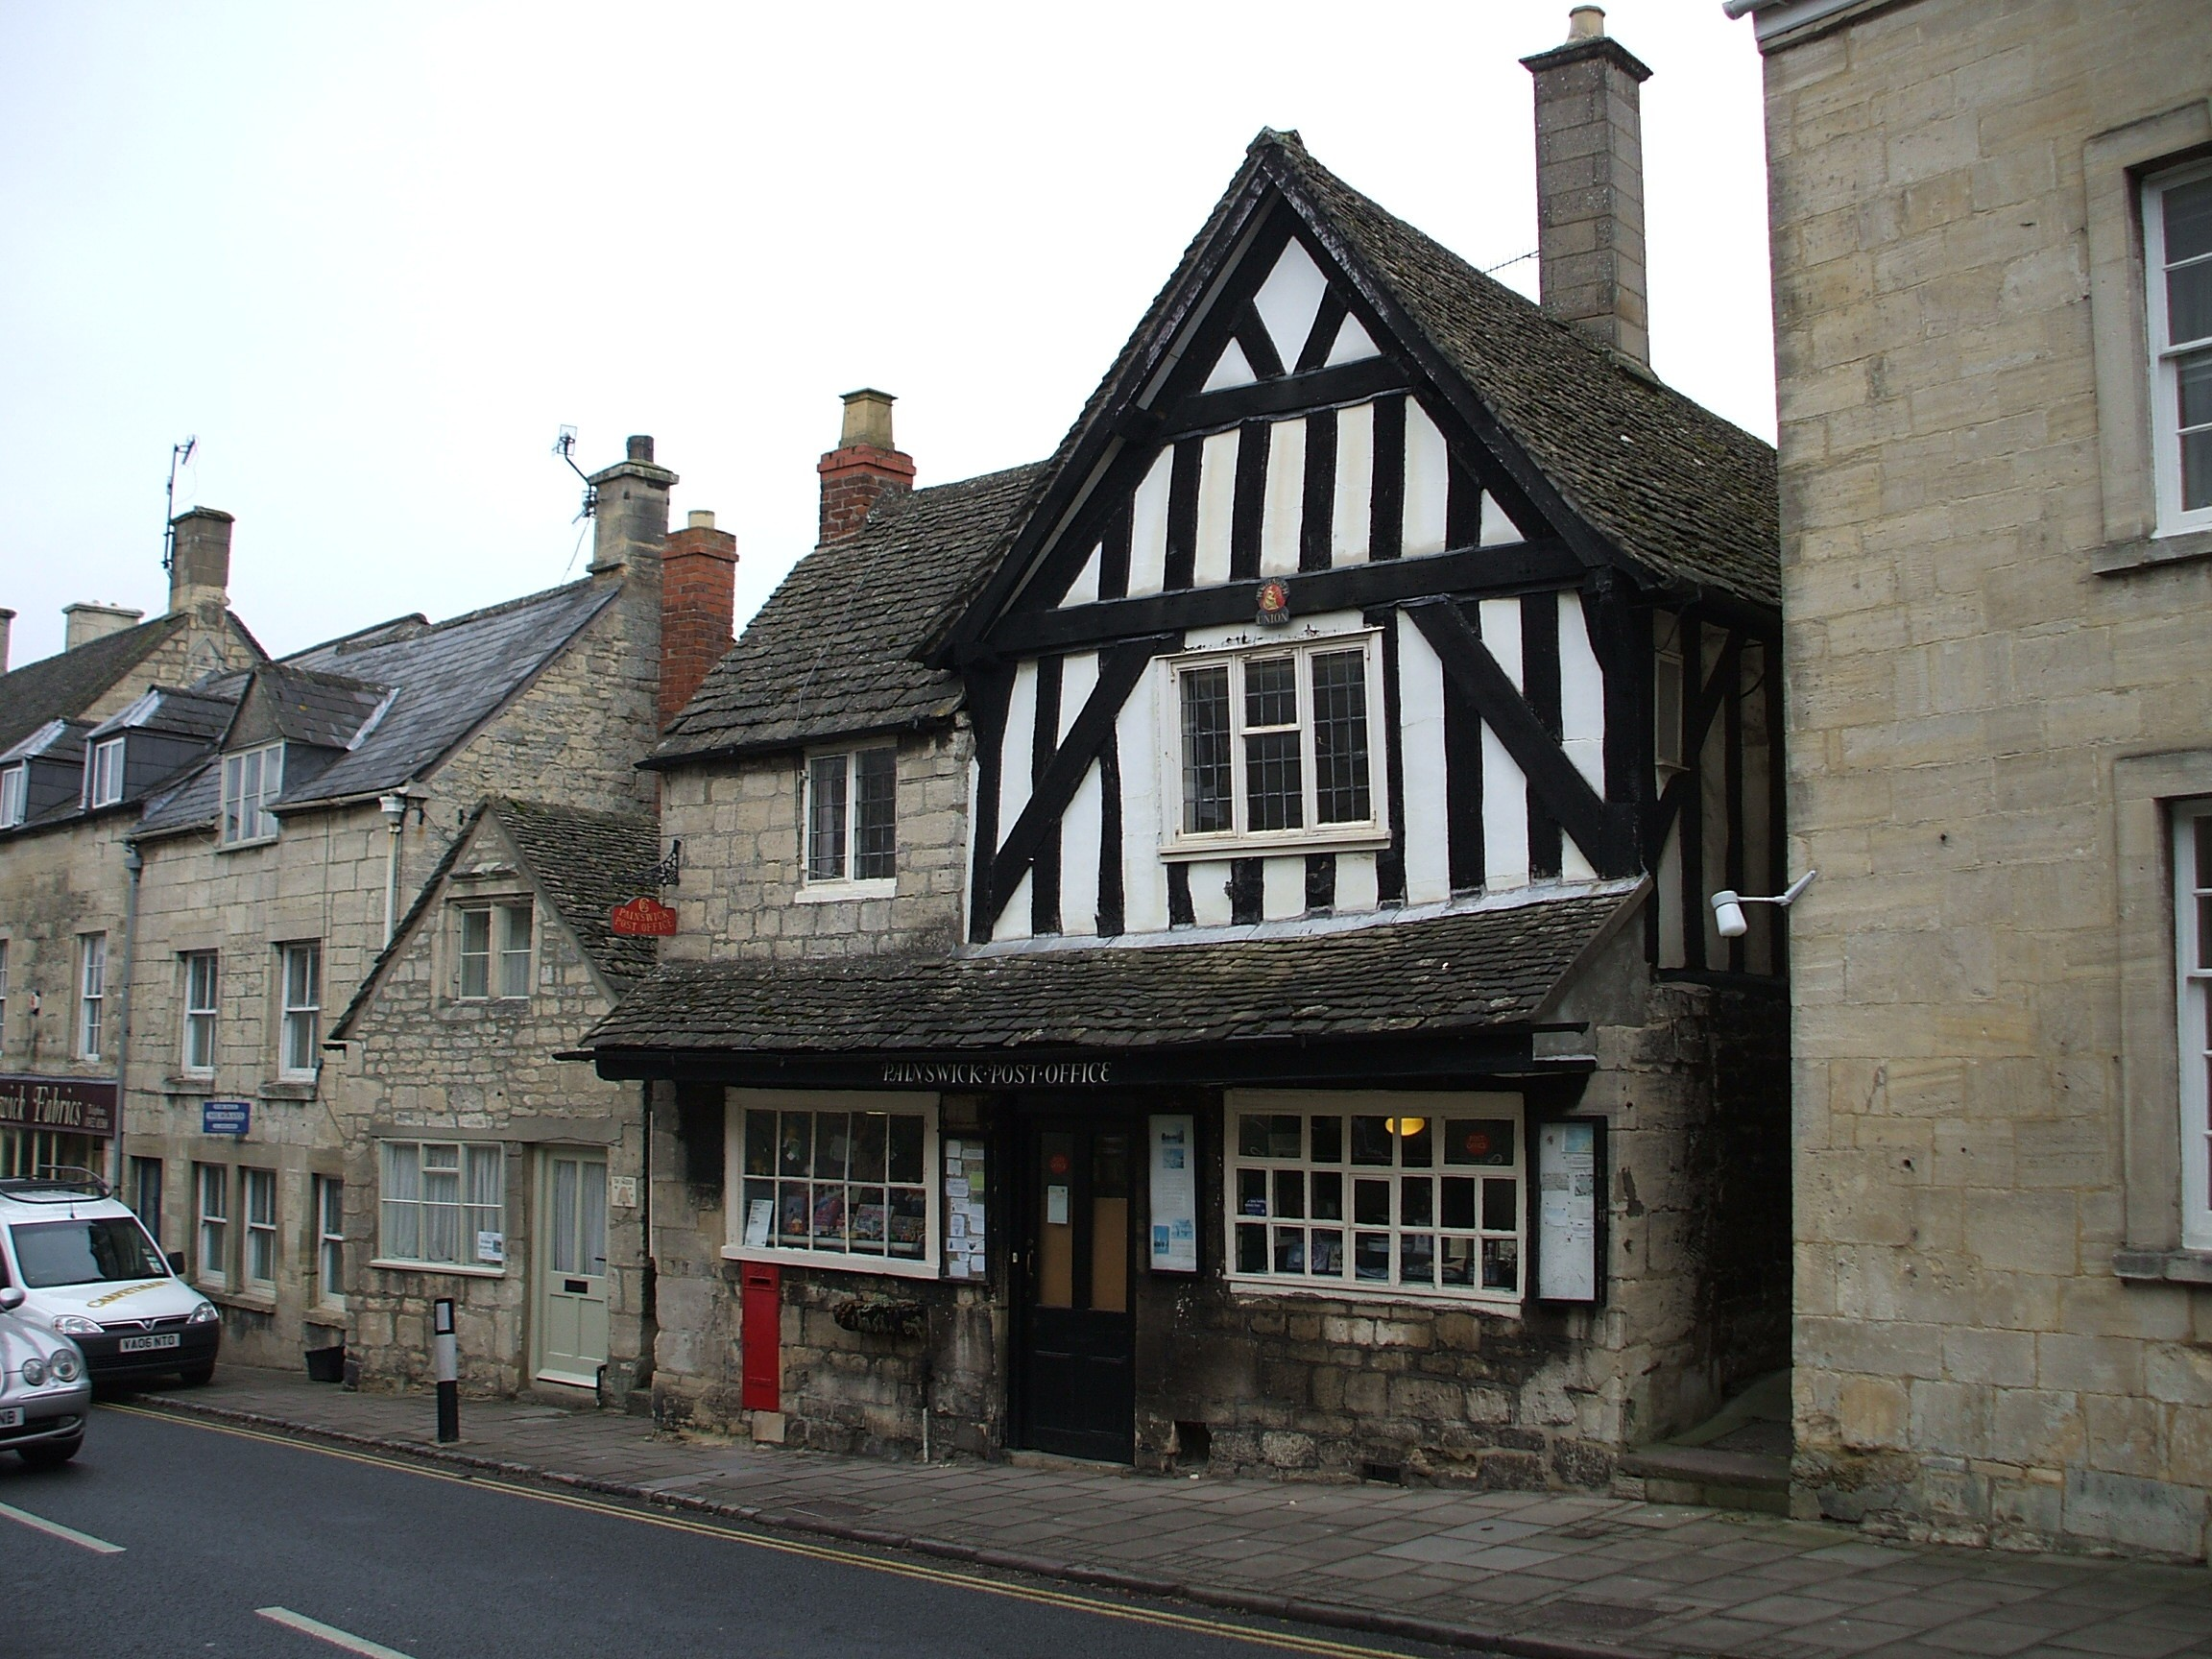 Post office in Painswick, Gloucestershire. The building which housed the post office dates from 1428, making it the oldest known building which also contains a post office within the United Kingdom. Photo taken on March 21, 2013.